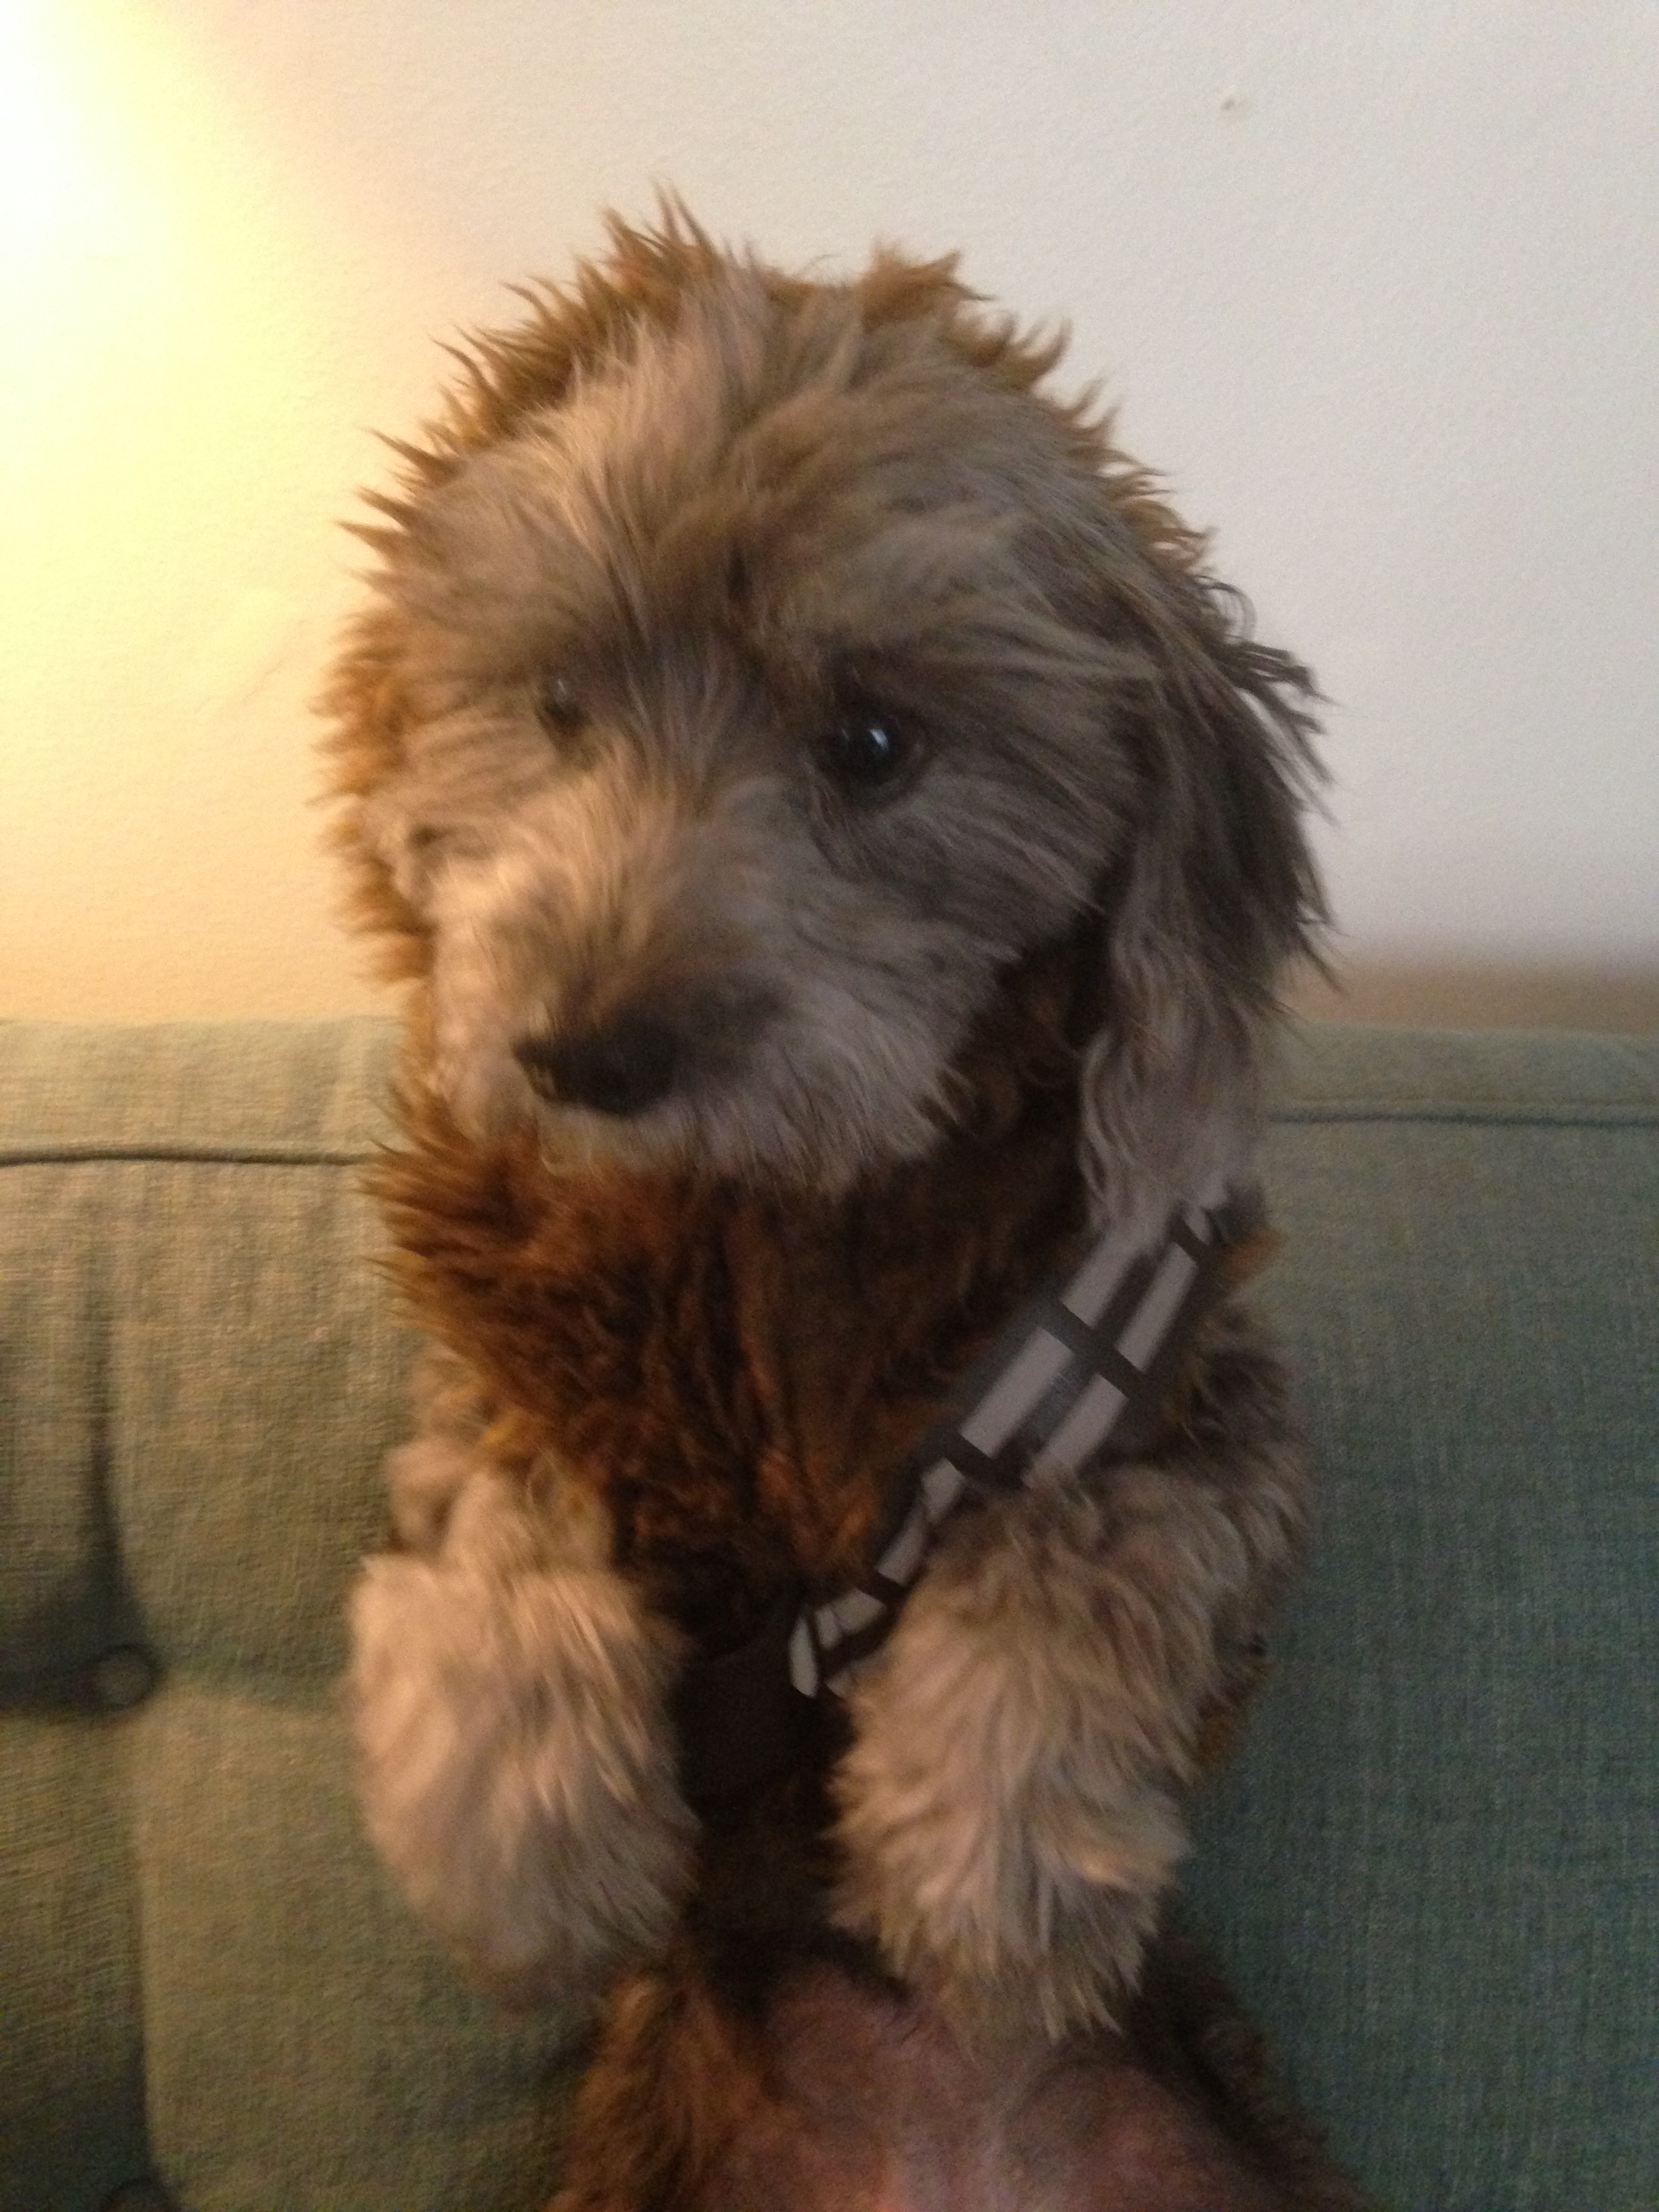 Miss Muppet as Chewbacca